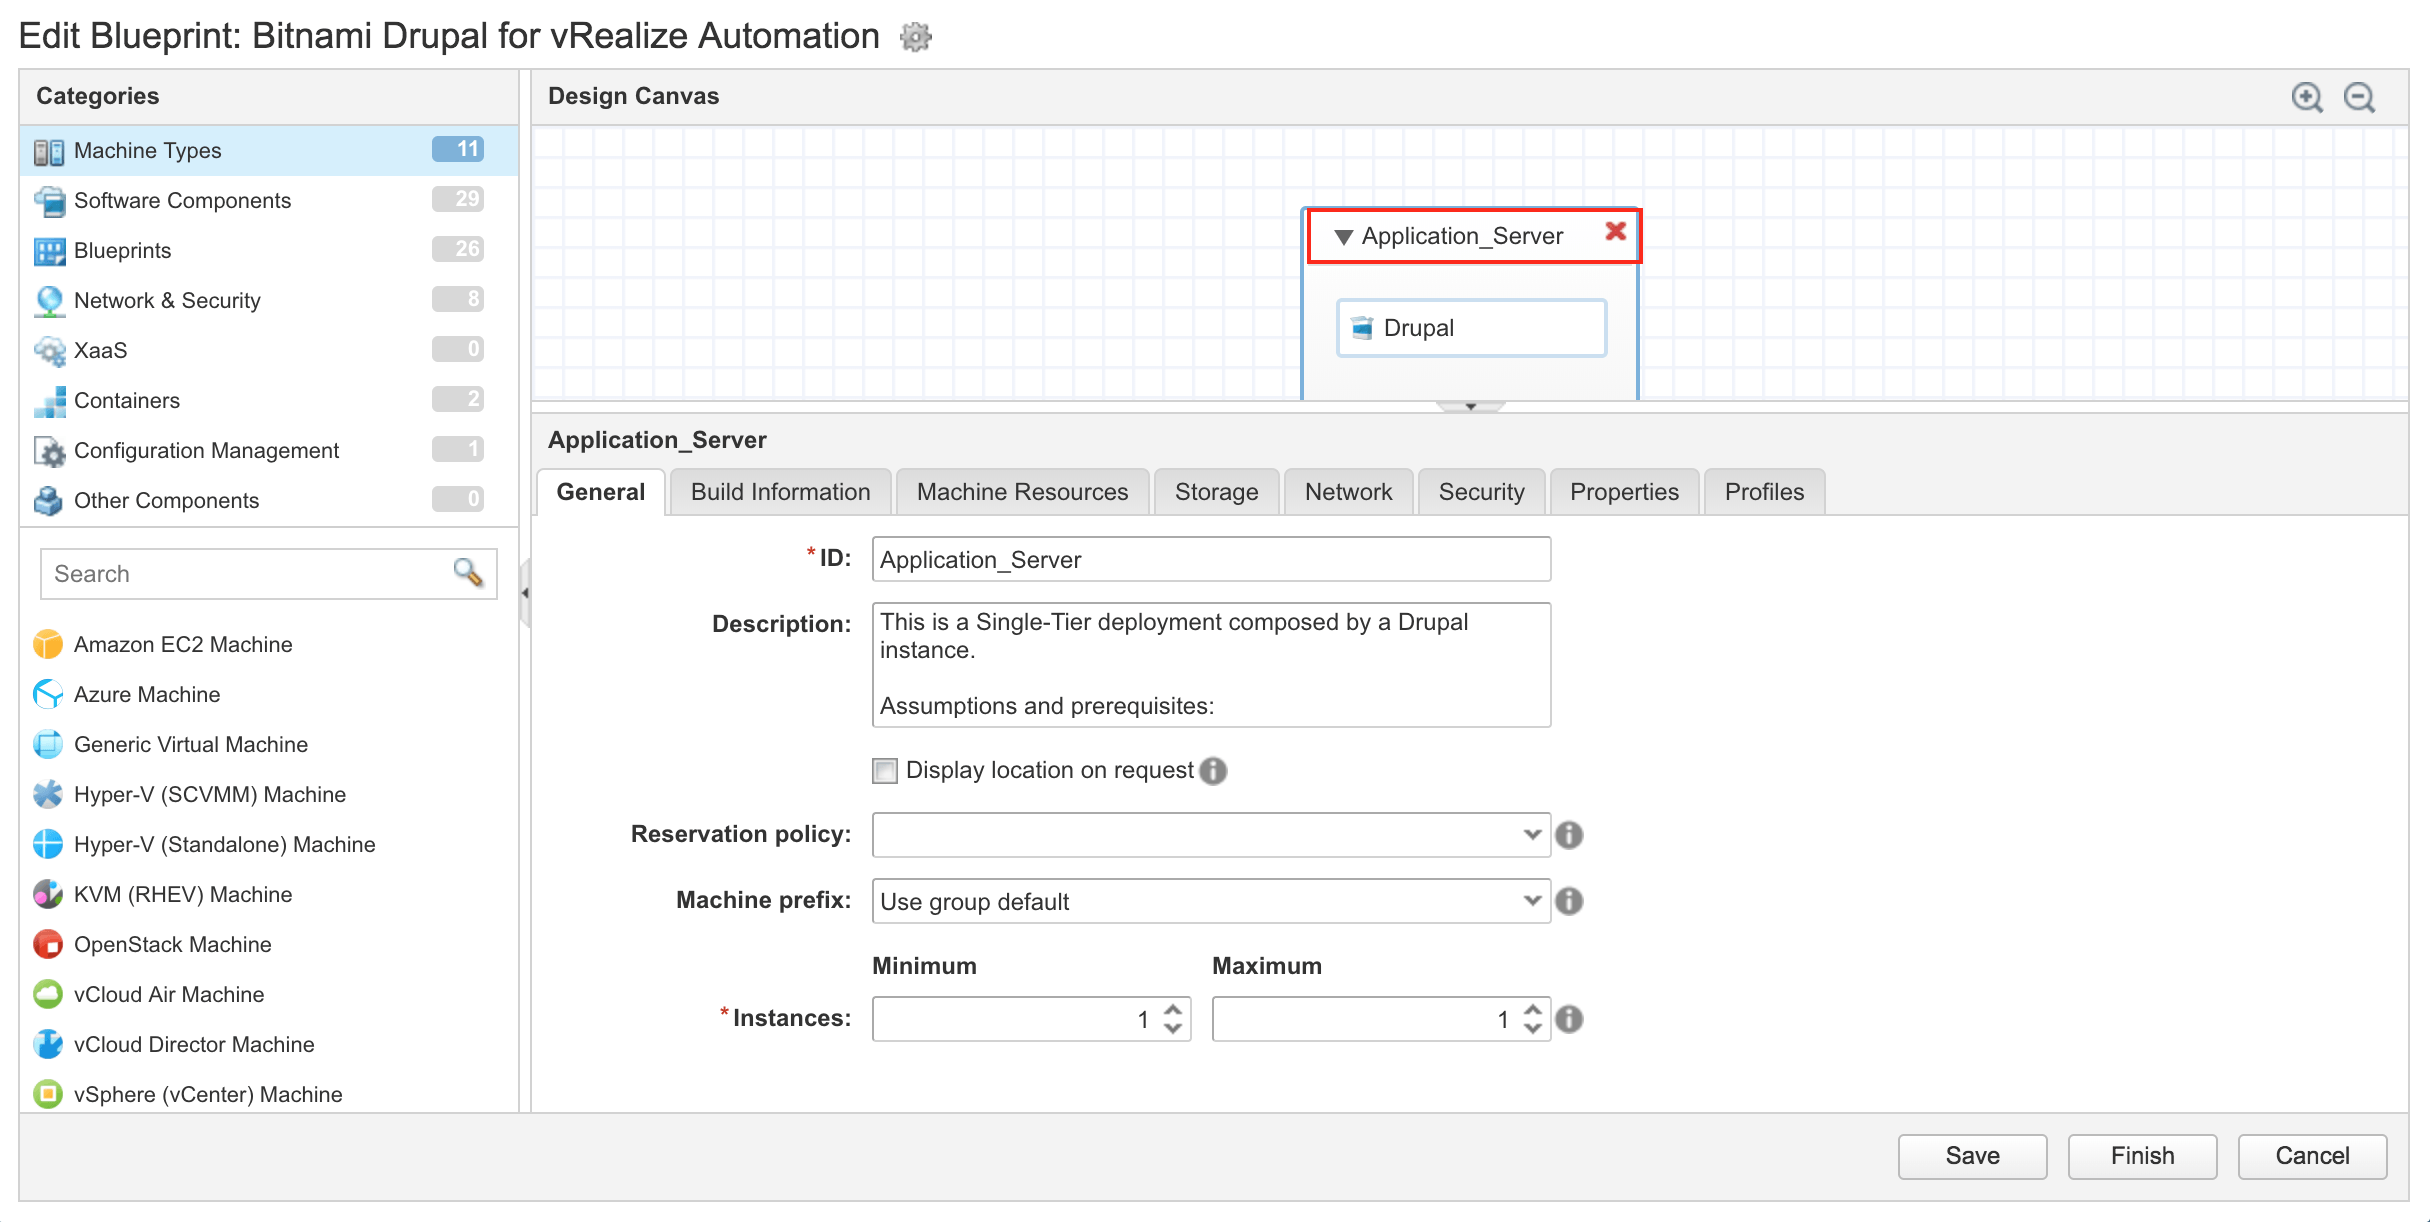 Get started with bitnami blueprints on vmware vrealize automation select the applicationserver section malvernweather